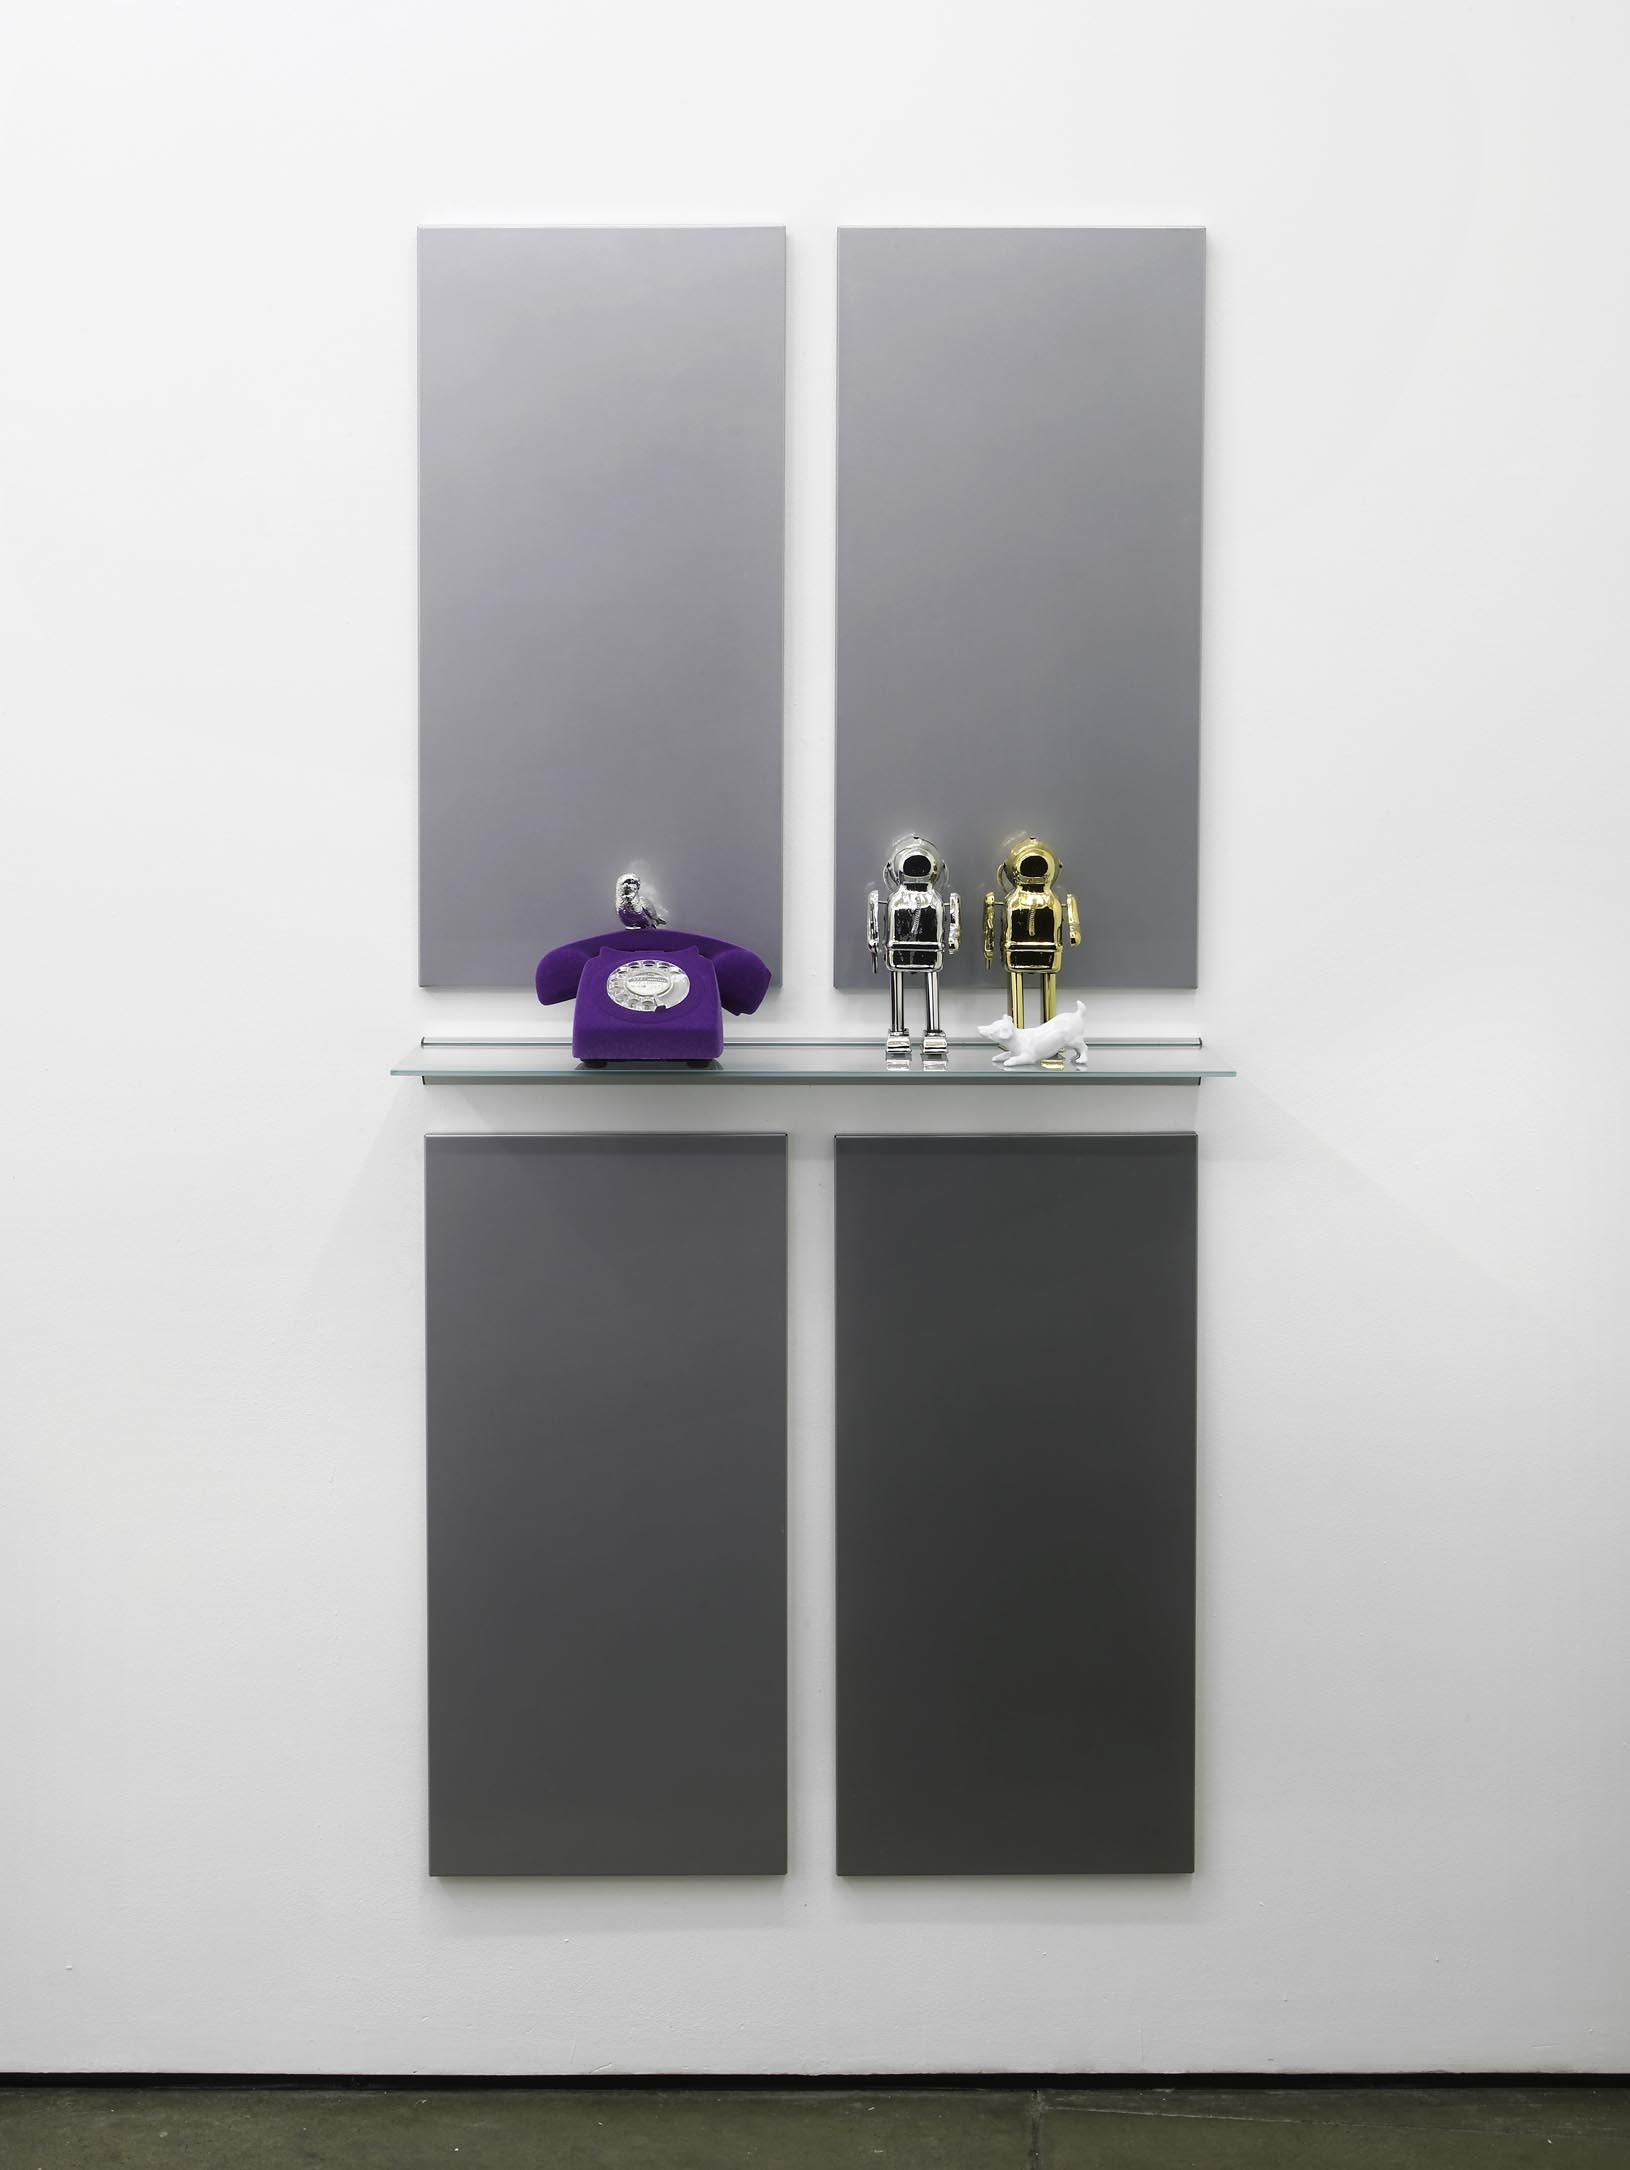 Matthew Darbyshire Untitled Homeware No. 12 2011 Chromed silver and gold toy robots, purple flocked telephone, painted white Beswick dog ornament,  glass and steel support: 172 x 80 x 16.5 cm